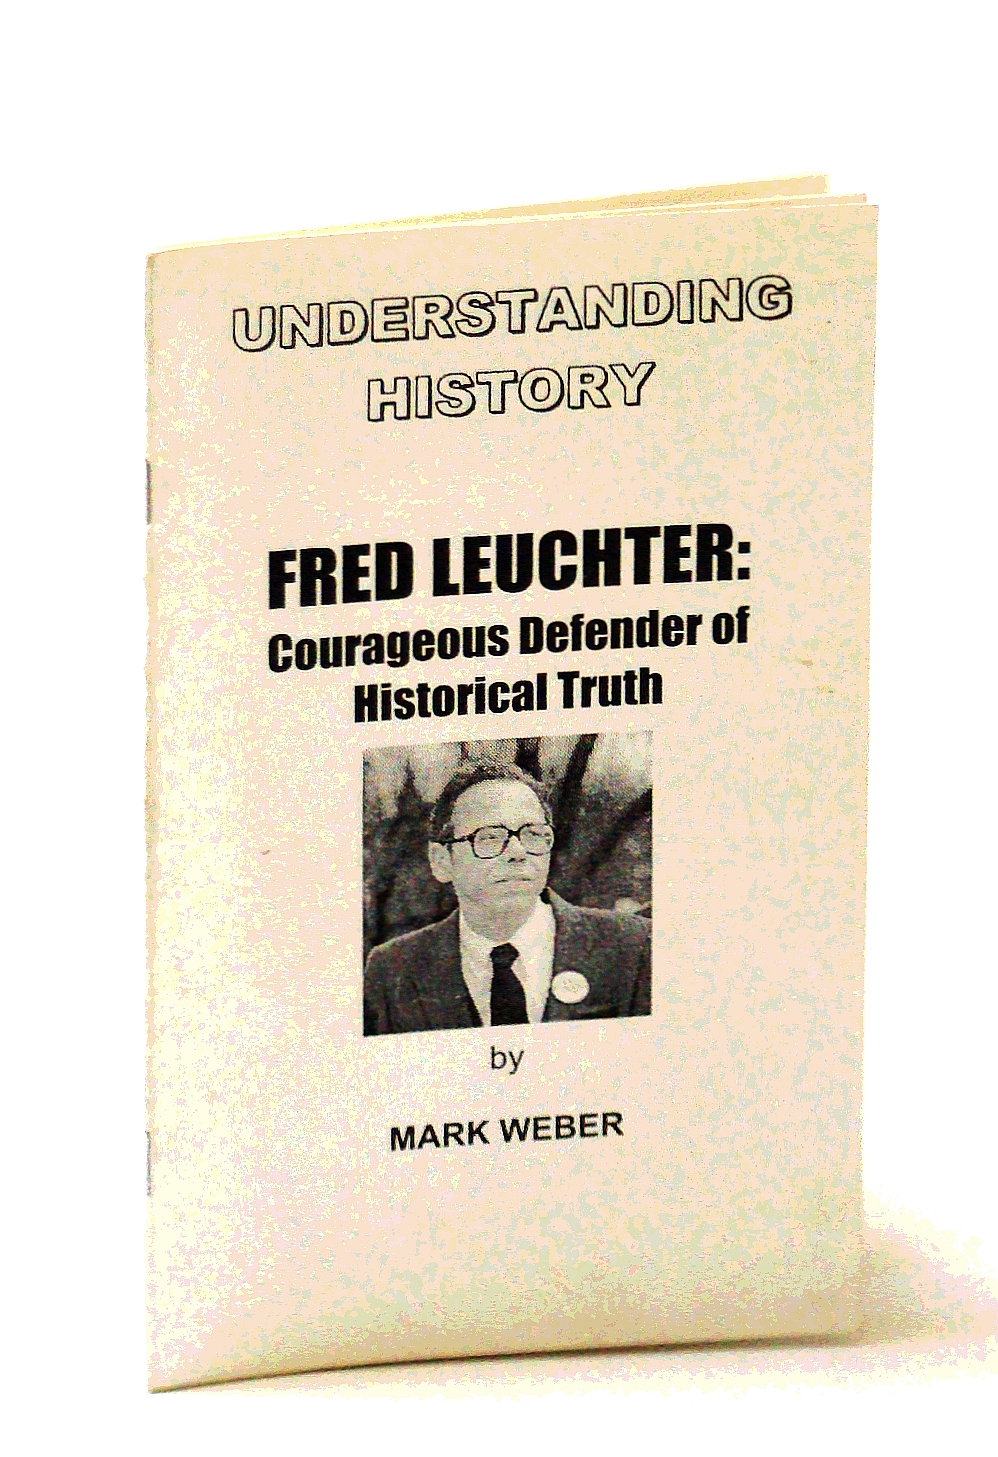 Image for Fred Leuchter: Courageous Defender of Historical Truth